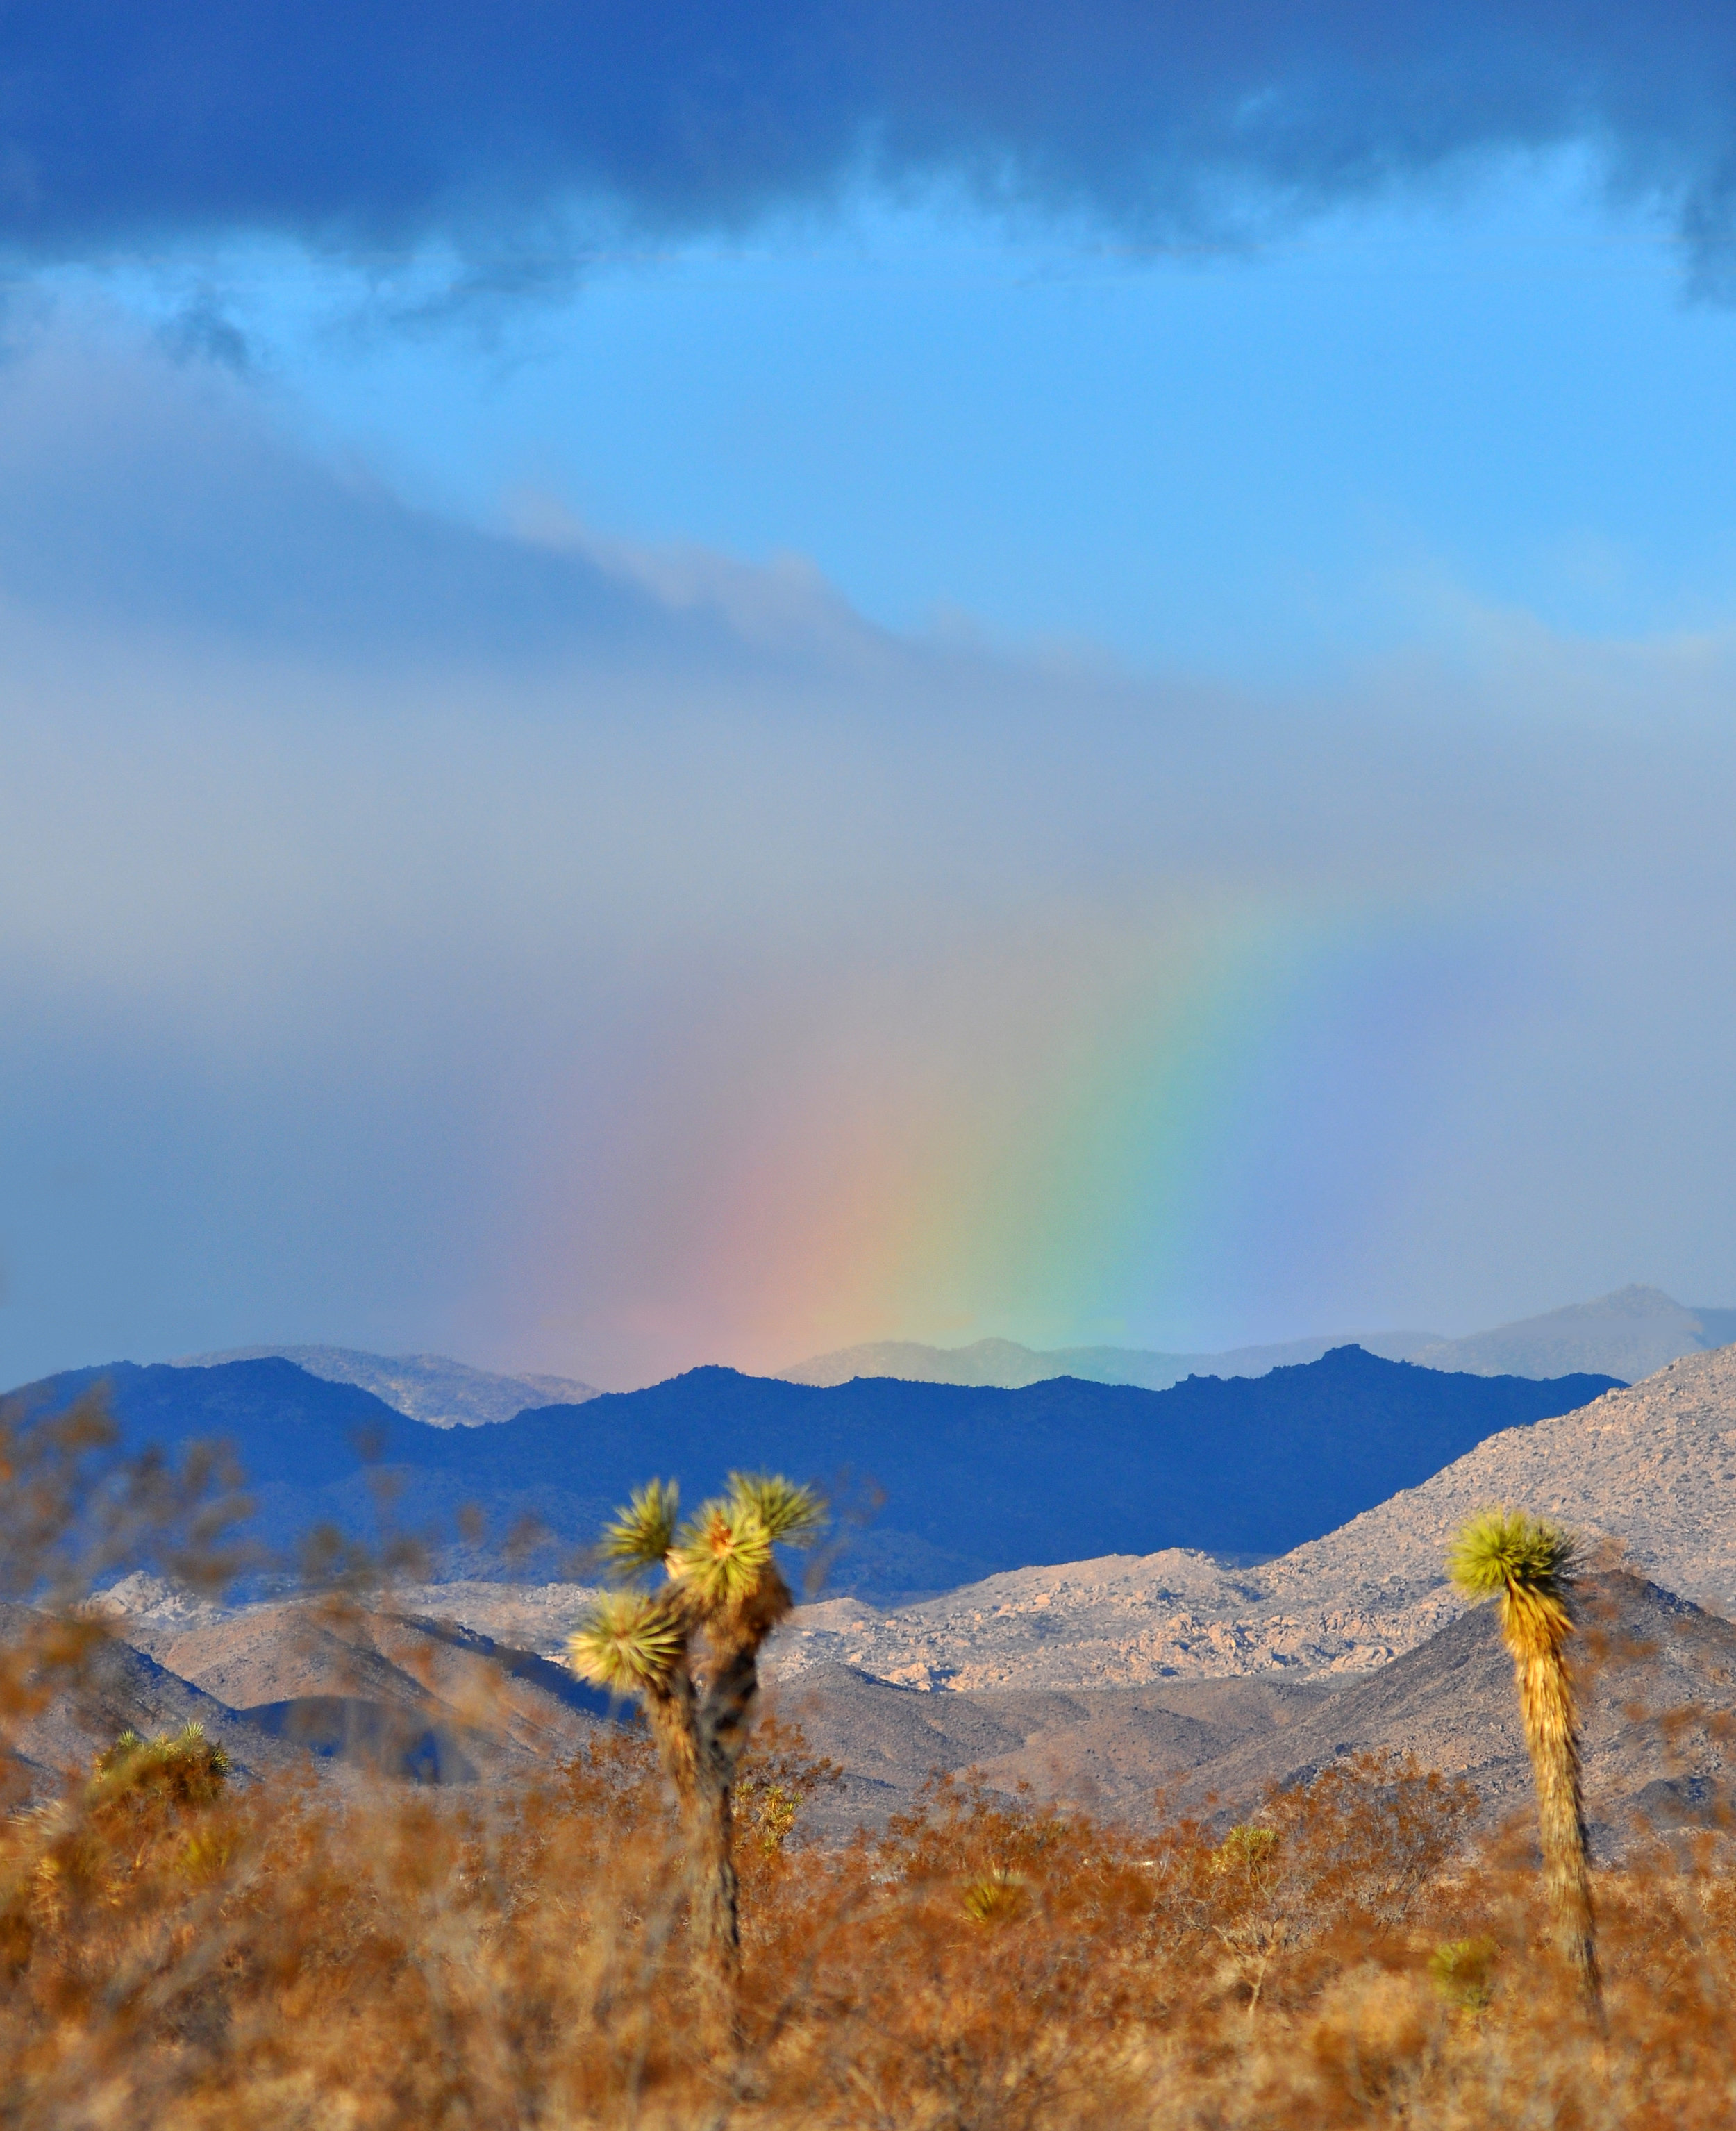 A rainbow in the Mojave Desert from Landers, Ca; photo by Jessie Eastland via Wikimedia Commons.